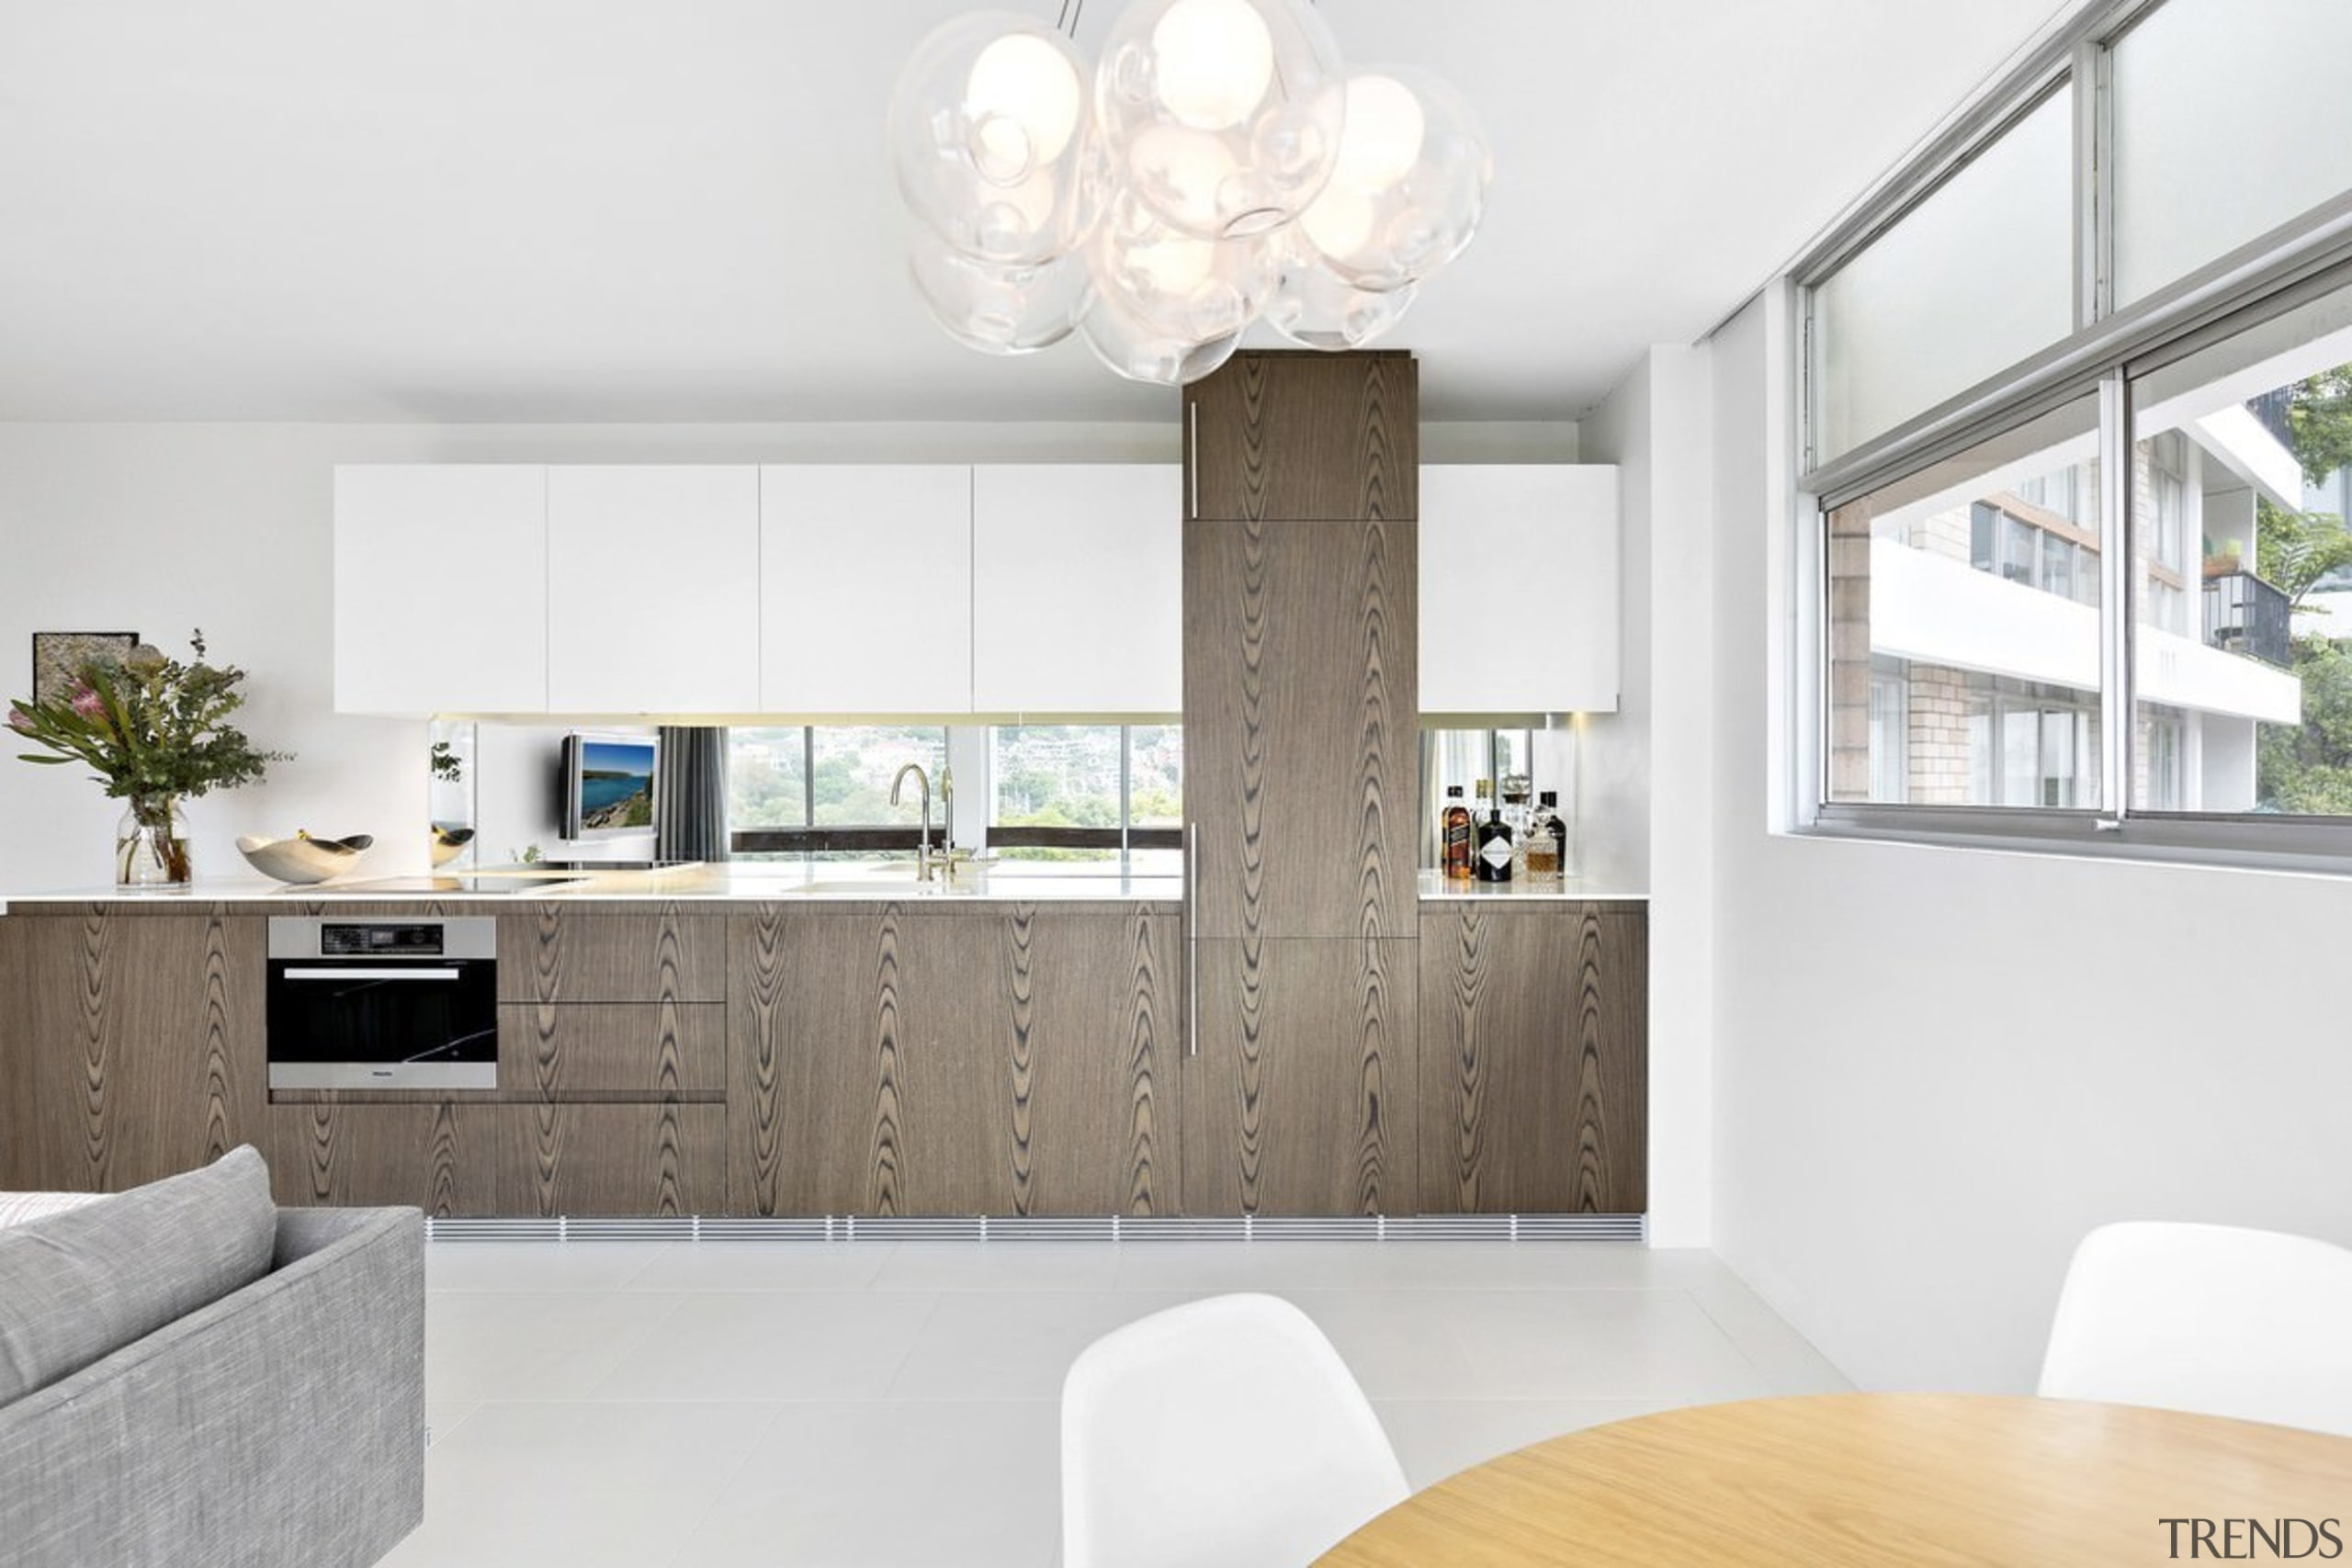 Wood panels on these cabinets break up the architecture, home, interior design, interior designer, living room, product design, white